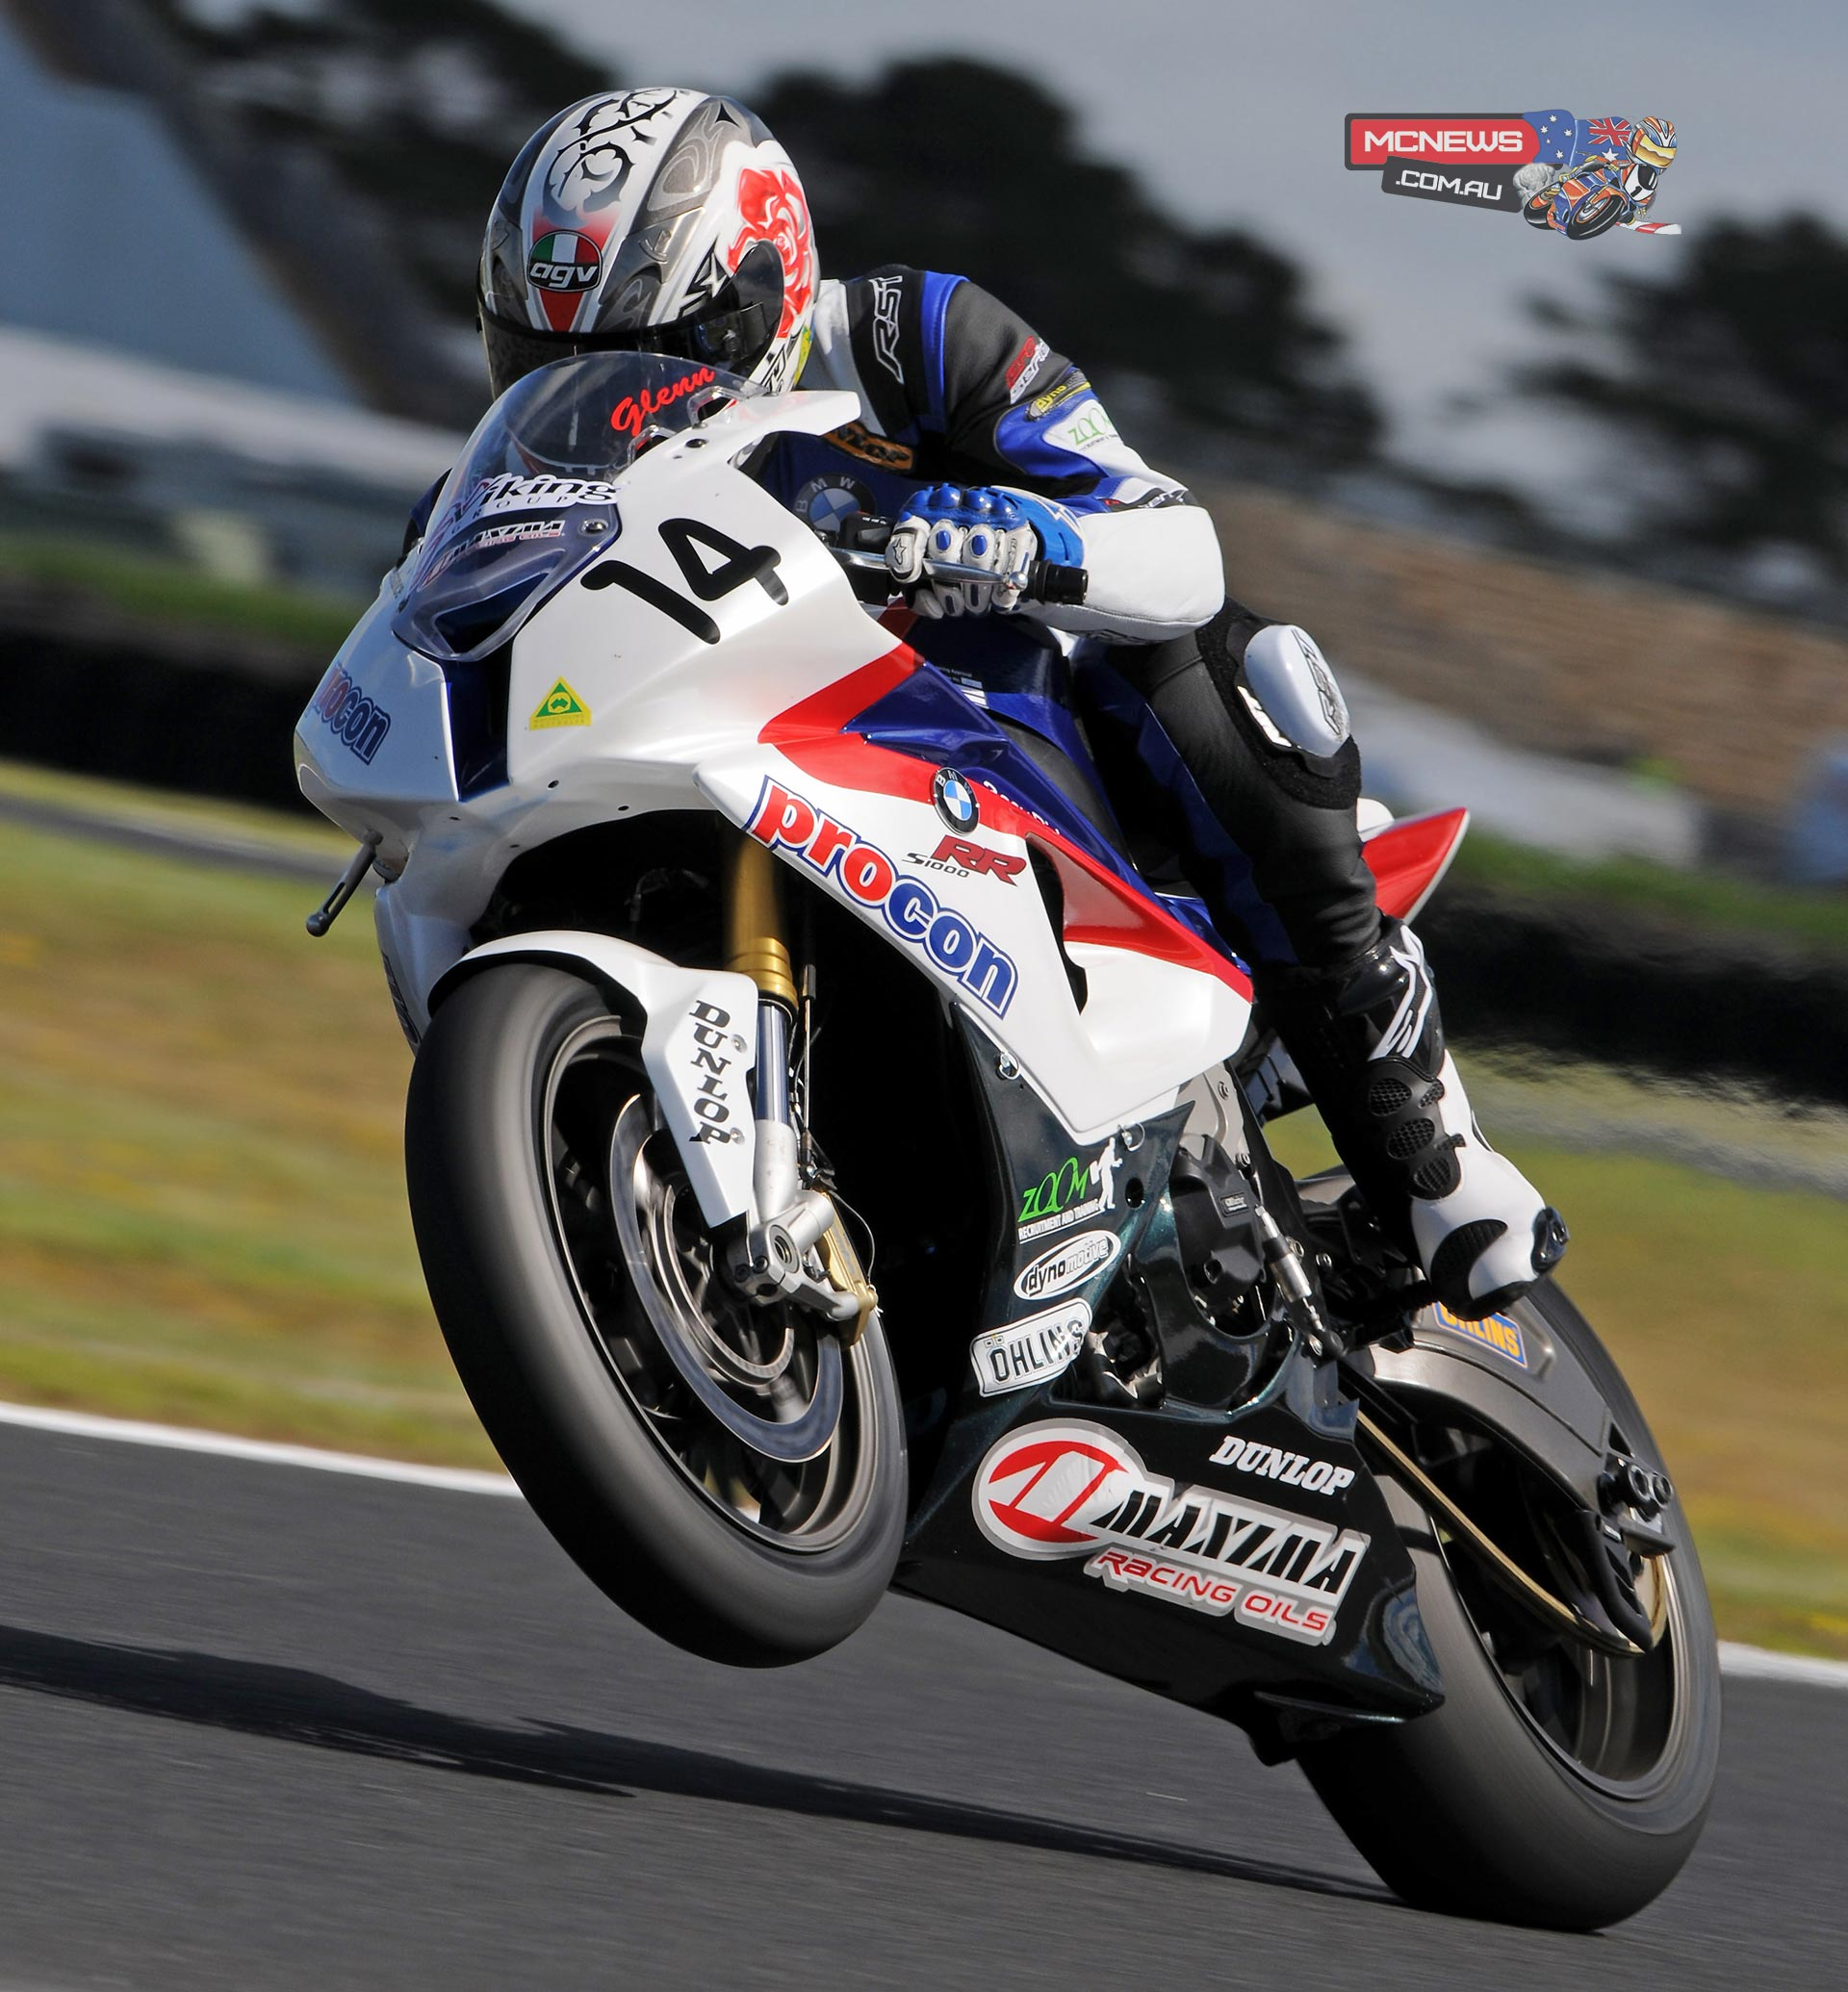 ASBK 2018 could see Glenn Allerton on a BMW S 1000 RR once again, but Suzuki is also an option for the three-time ASBK Champ